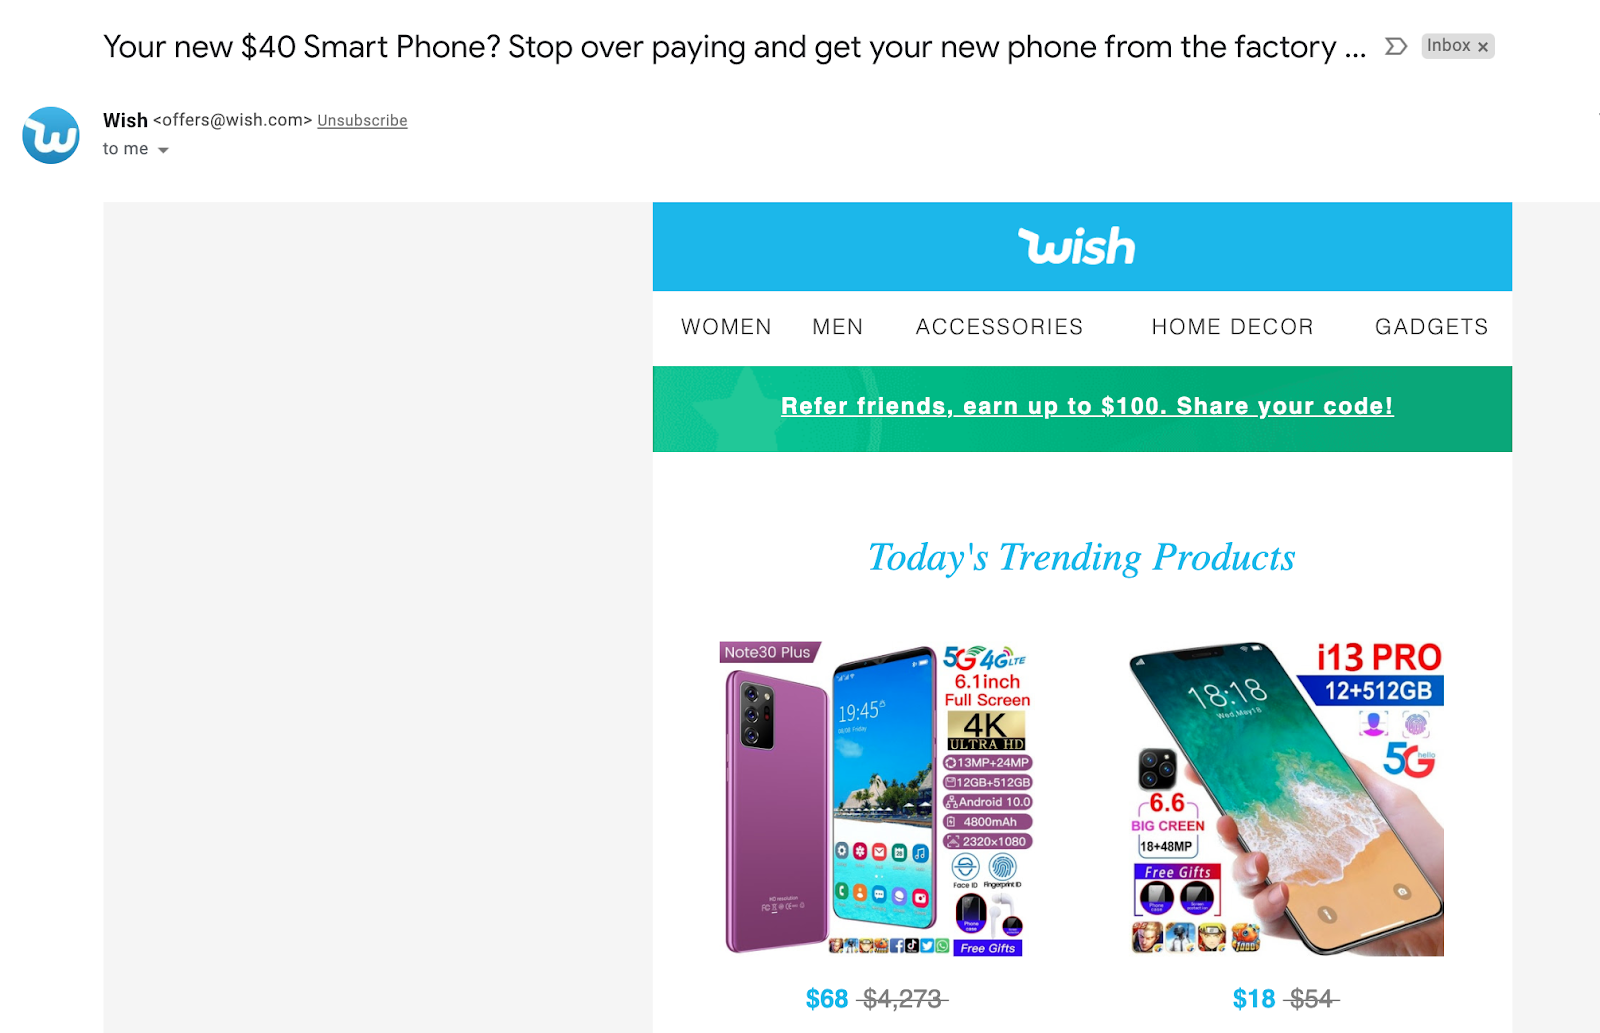 Email marketing campaign example by Wish